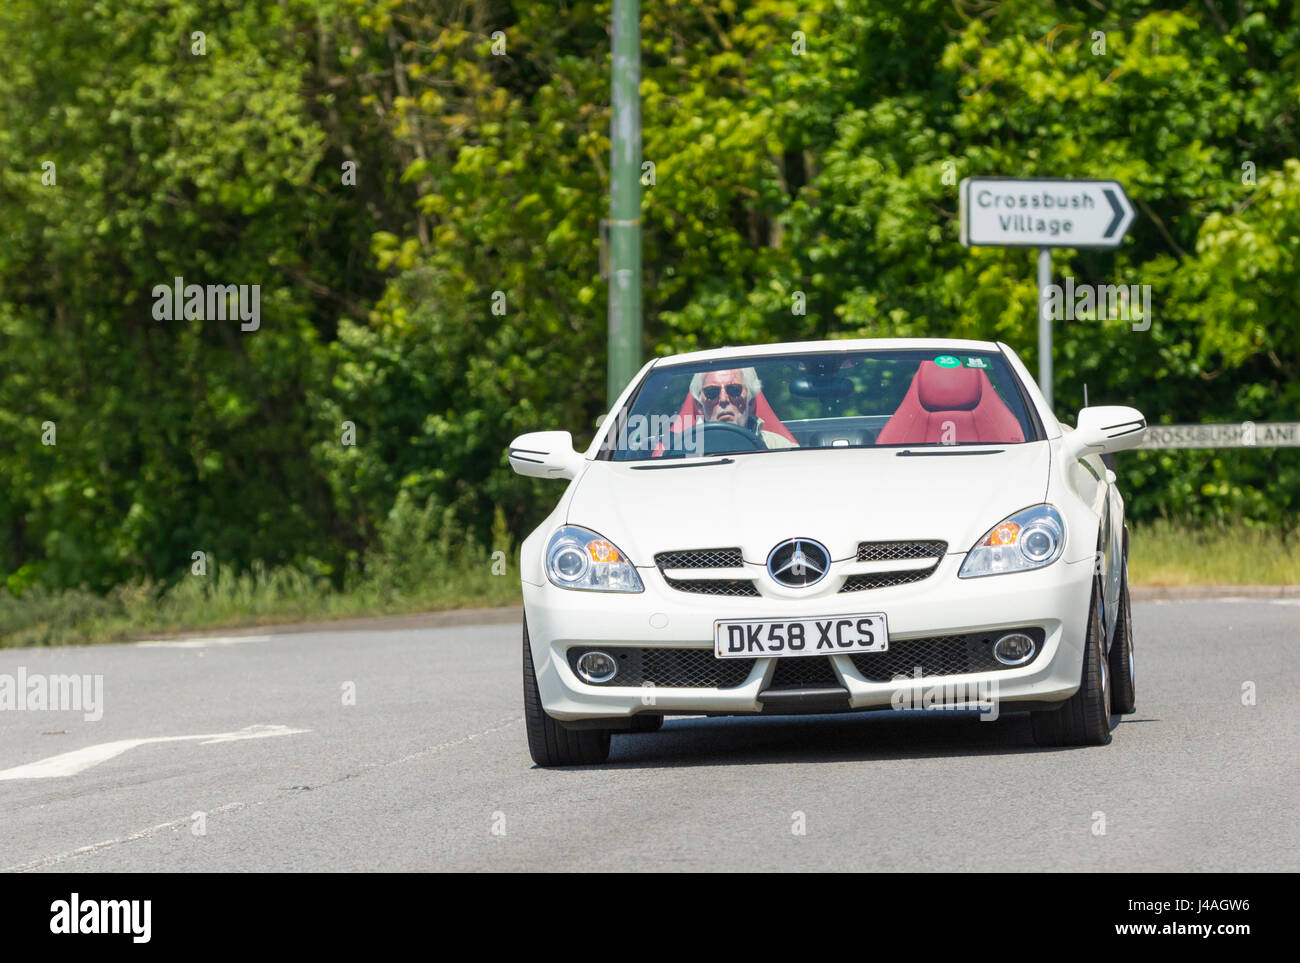 Convertible car. Man driving a luxury car in hot weather with the top down. - Stock Image